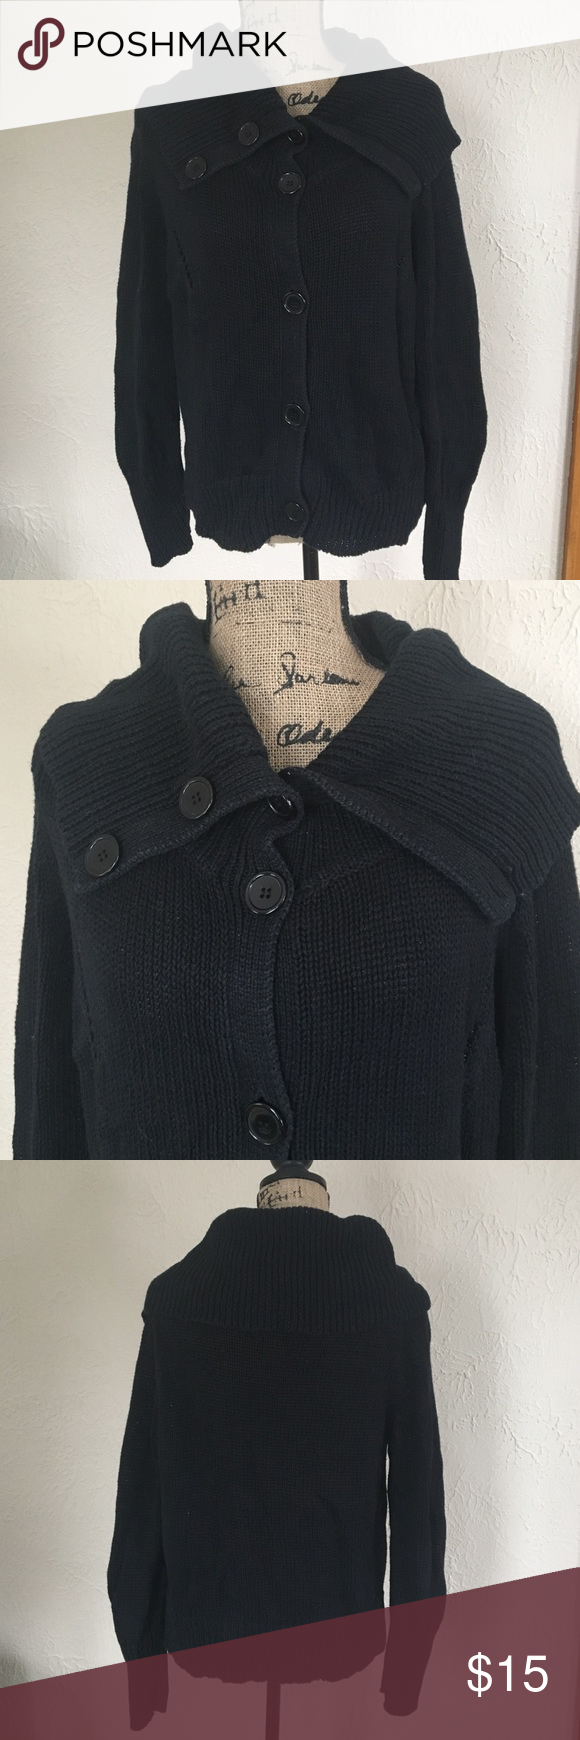 Black button down sweater | Black button, Conditioning and Nice